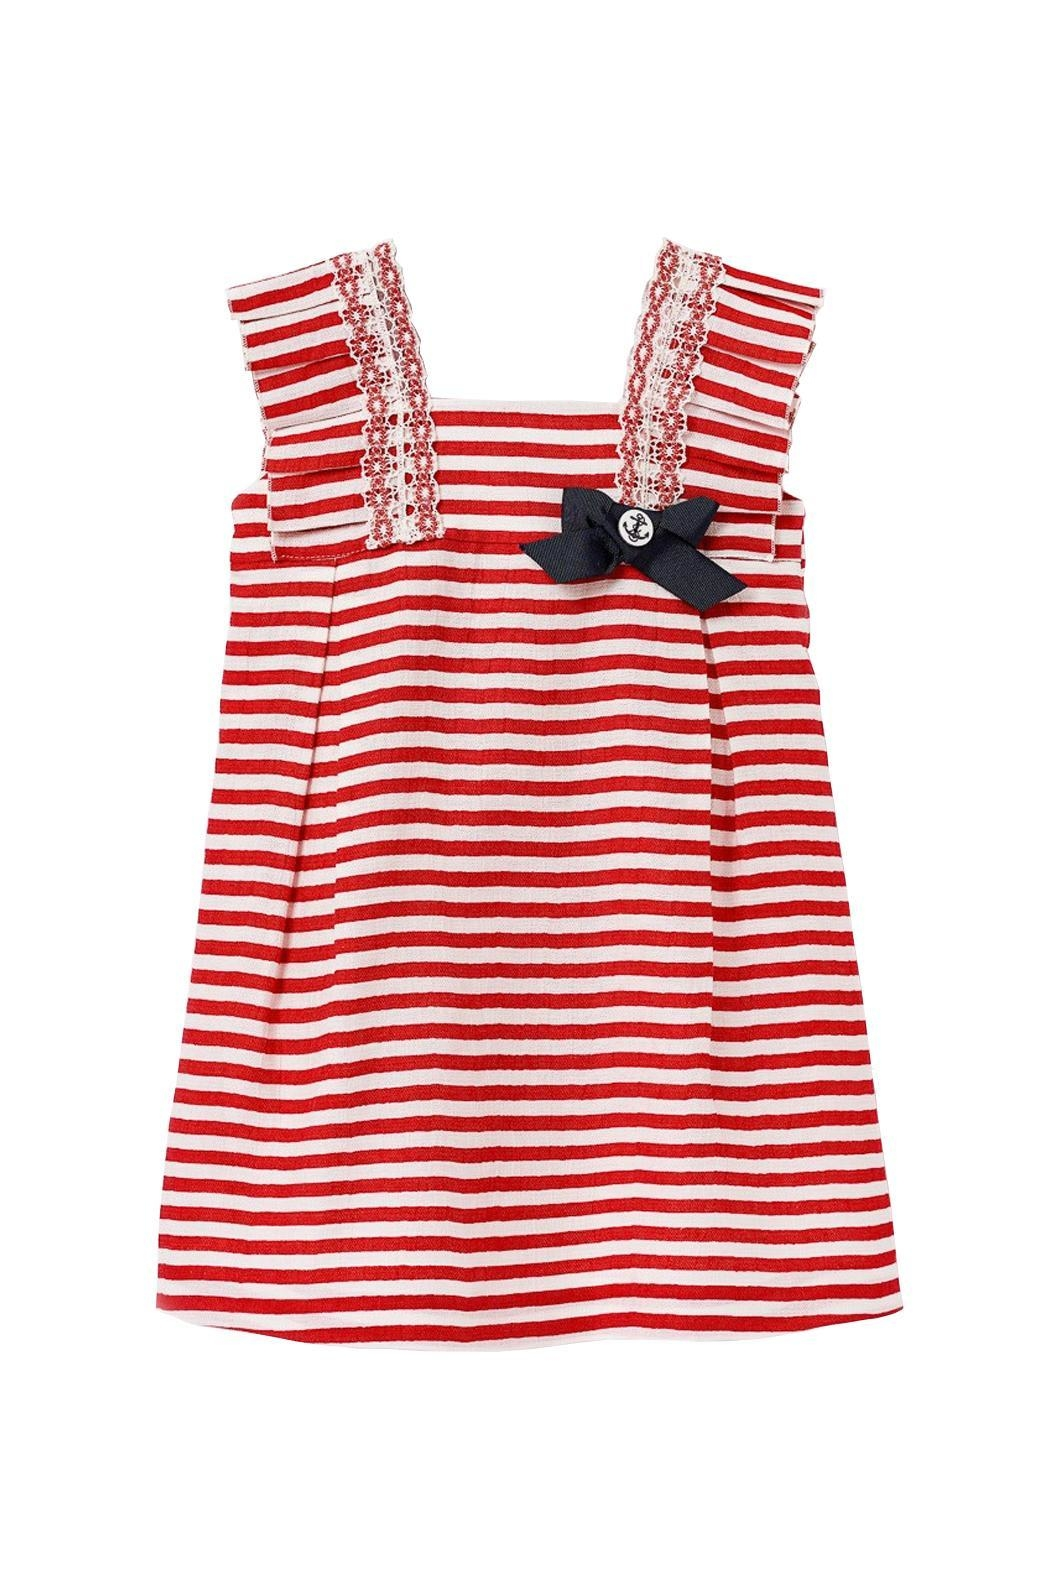 Paz Rodriguez Red Nautical Dress. - Front Cropped Image